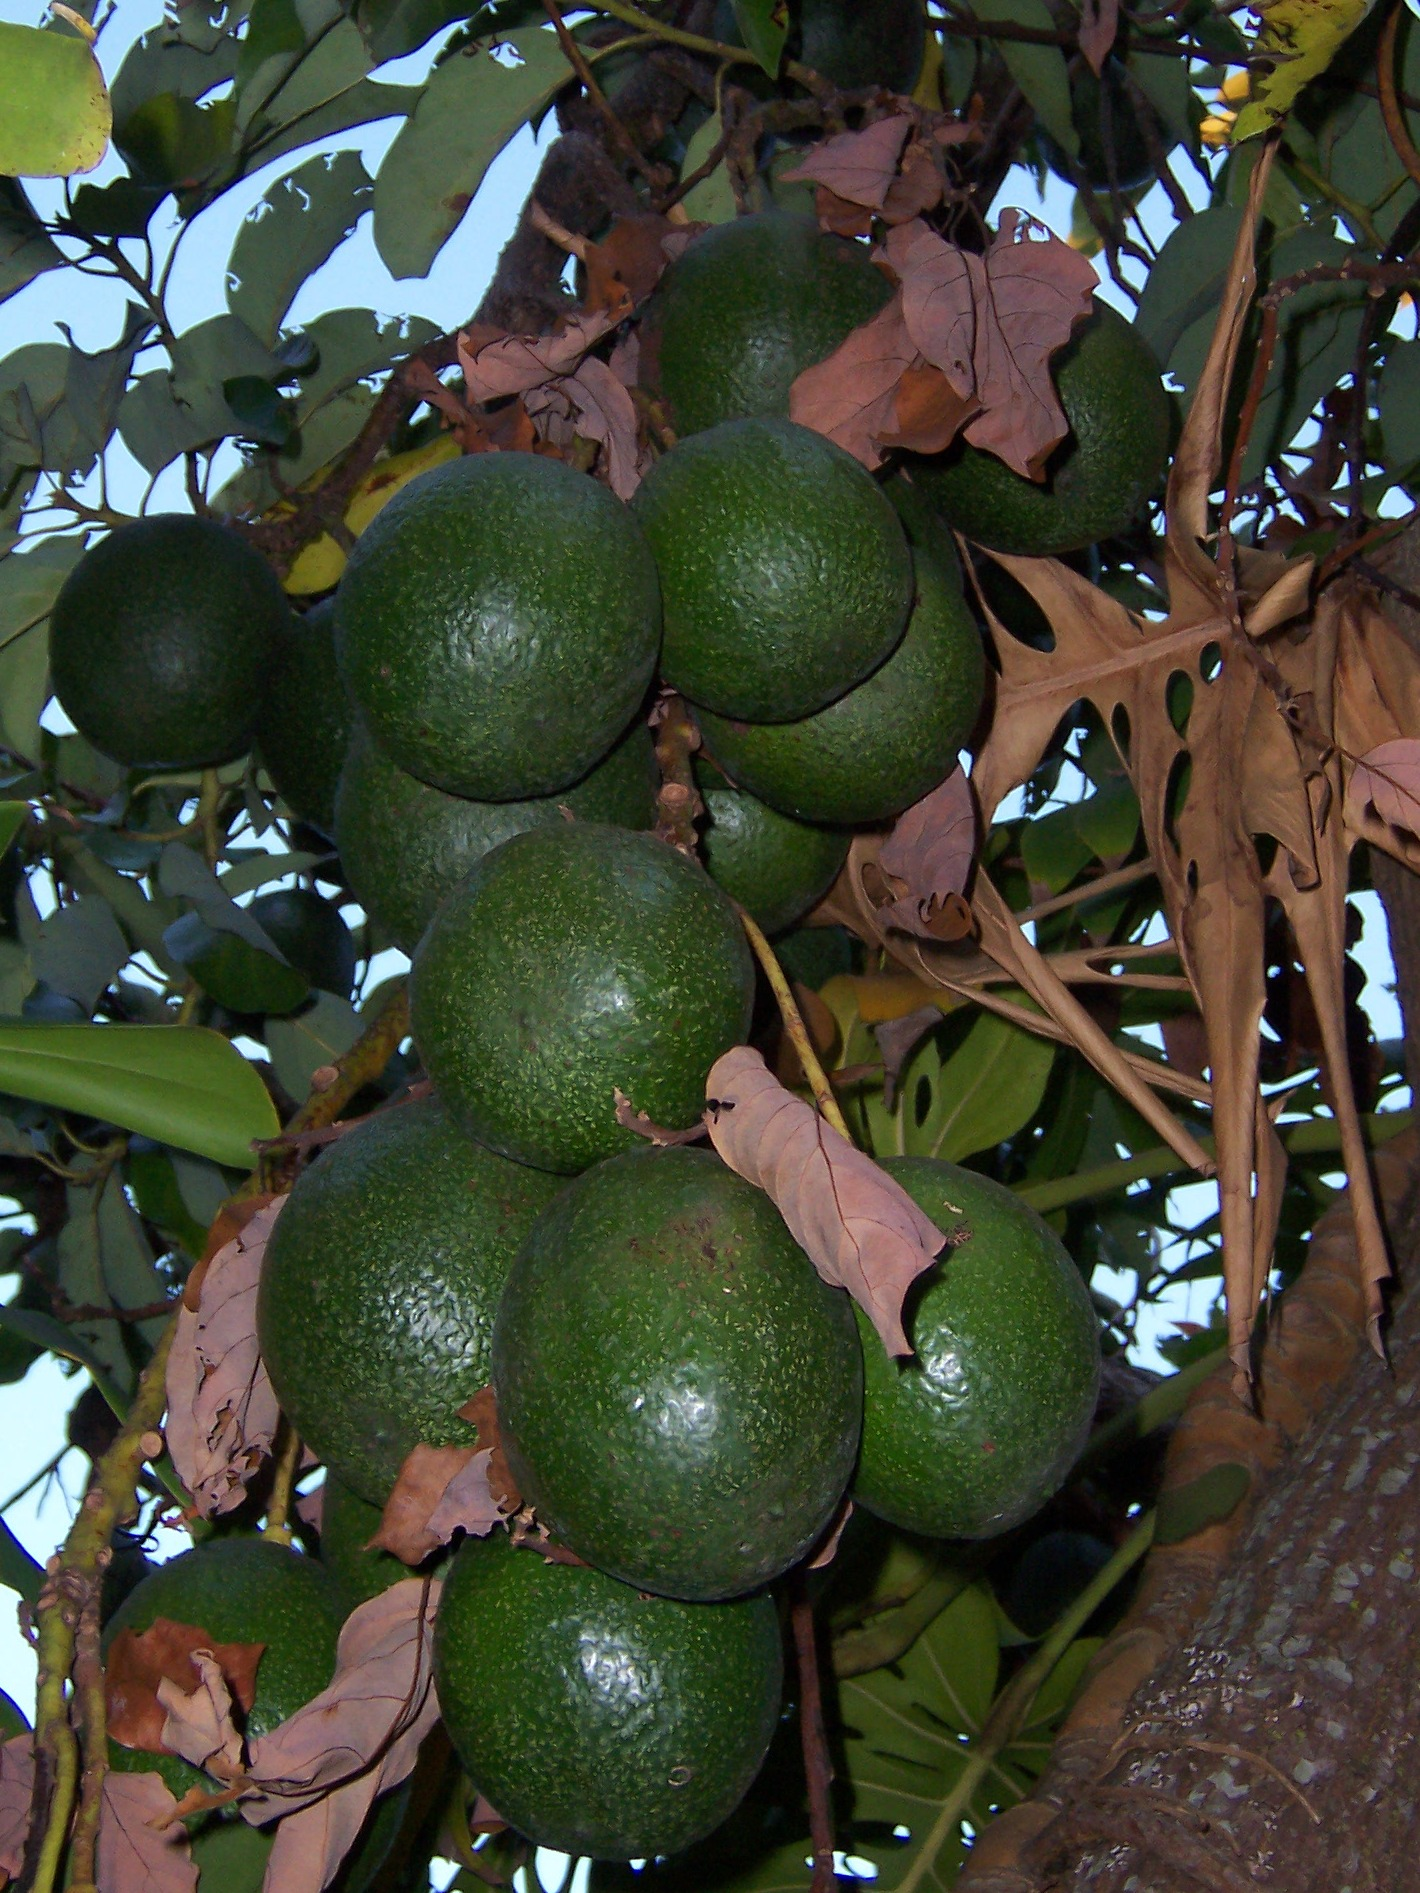 http://upload.wikimedia.org/wikipedia/commons/c/c4/Persea_americana_fruits_2.jpg